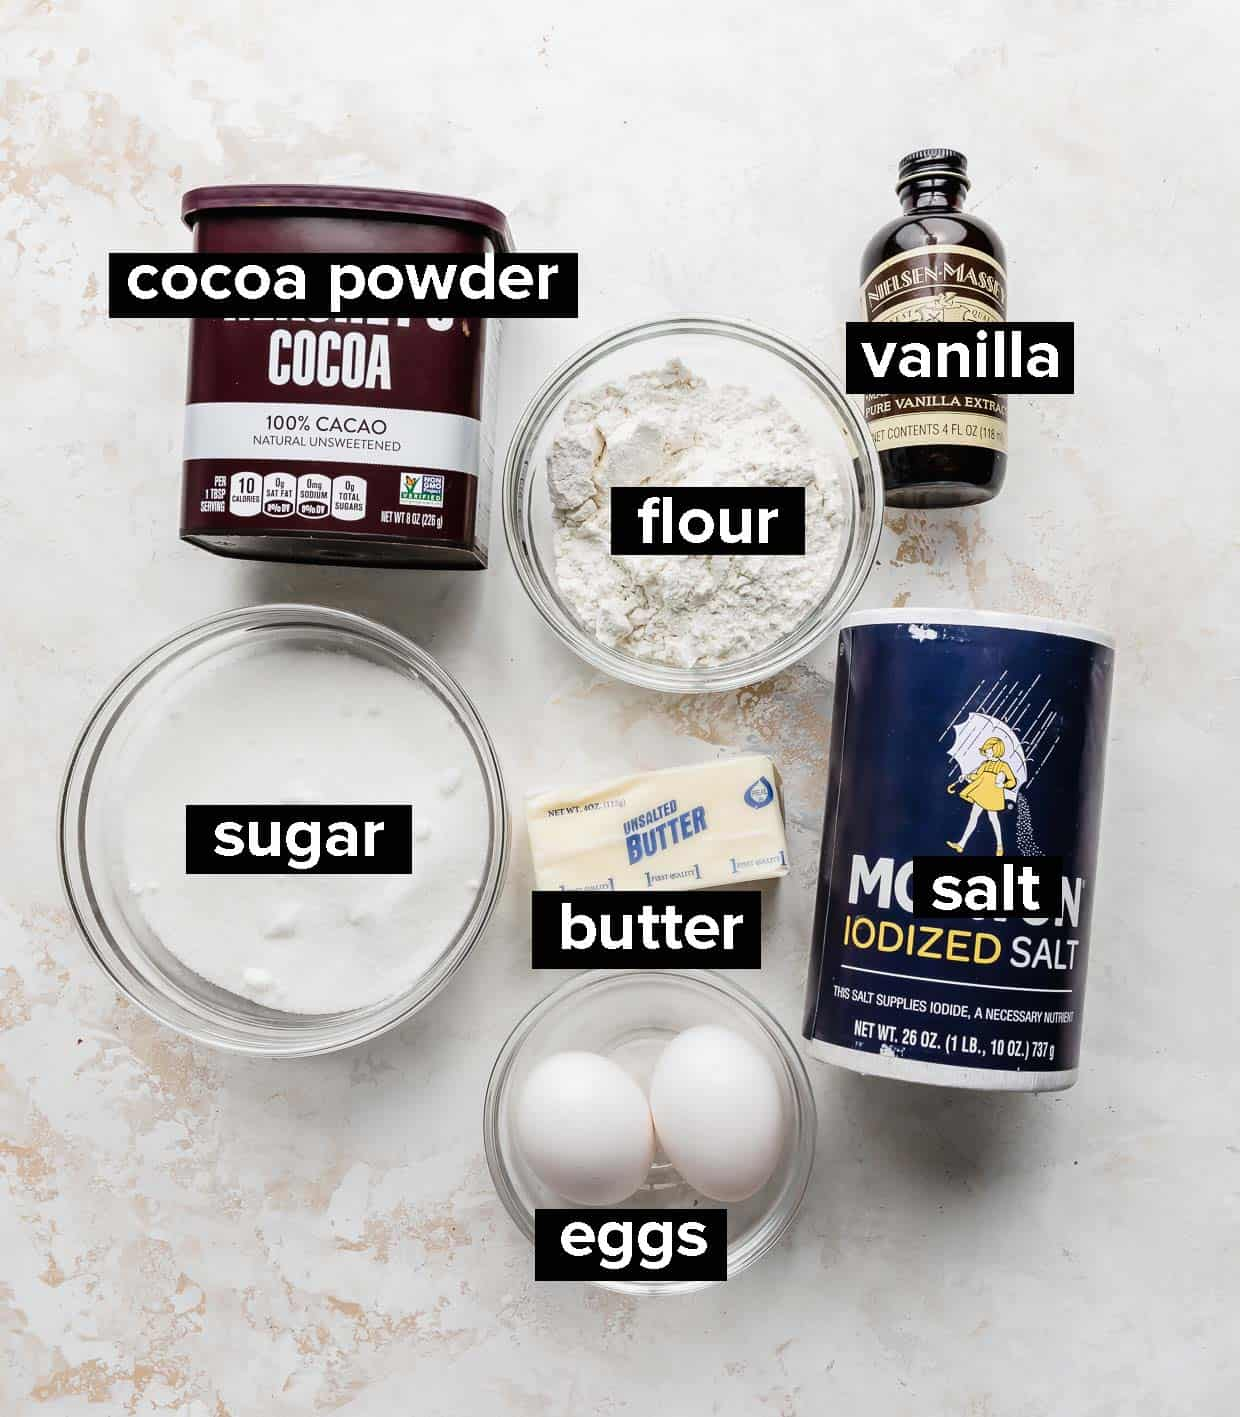 Ingredients used to make lunch lady brownies set out on a white and cream textured background.